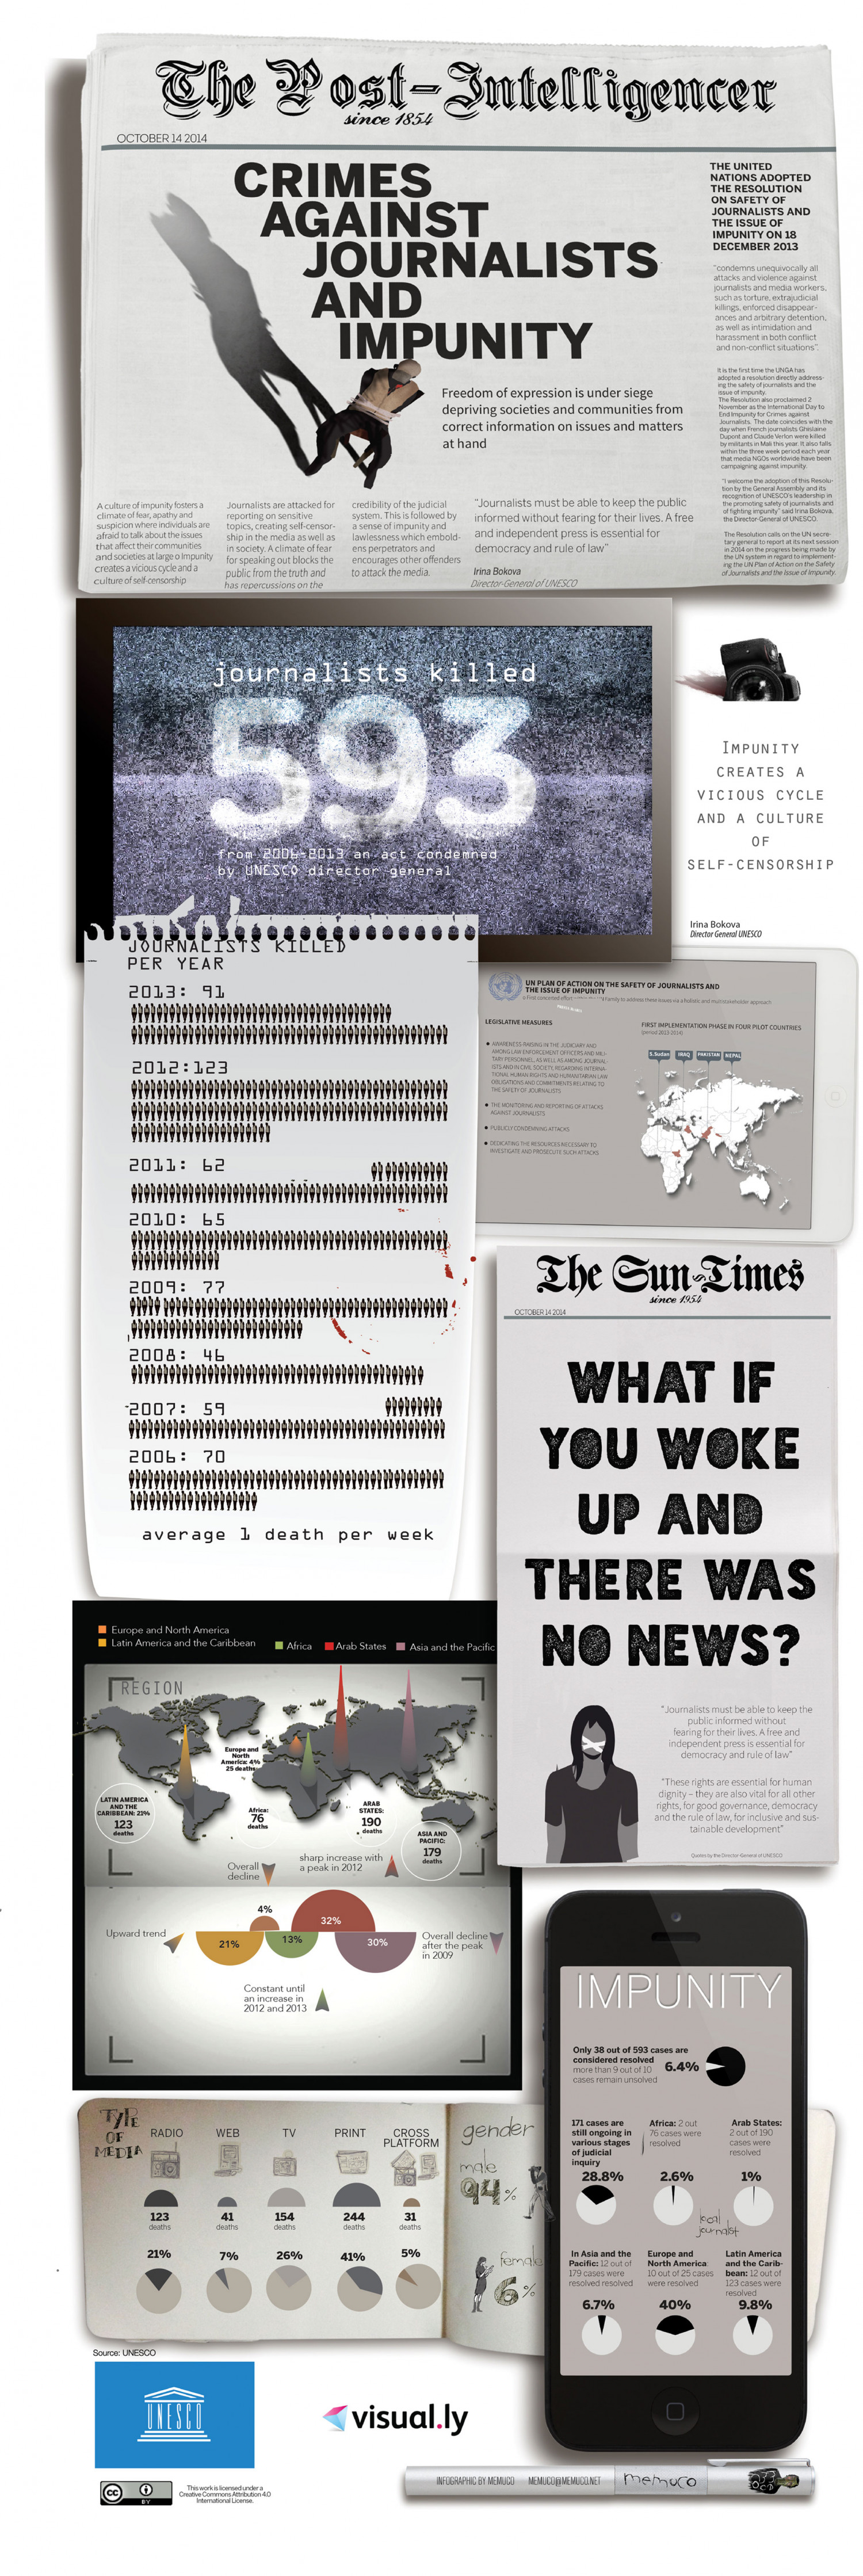 Crimes against Journalists and Impunity Infographic